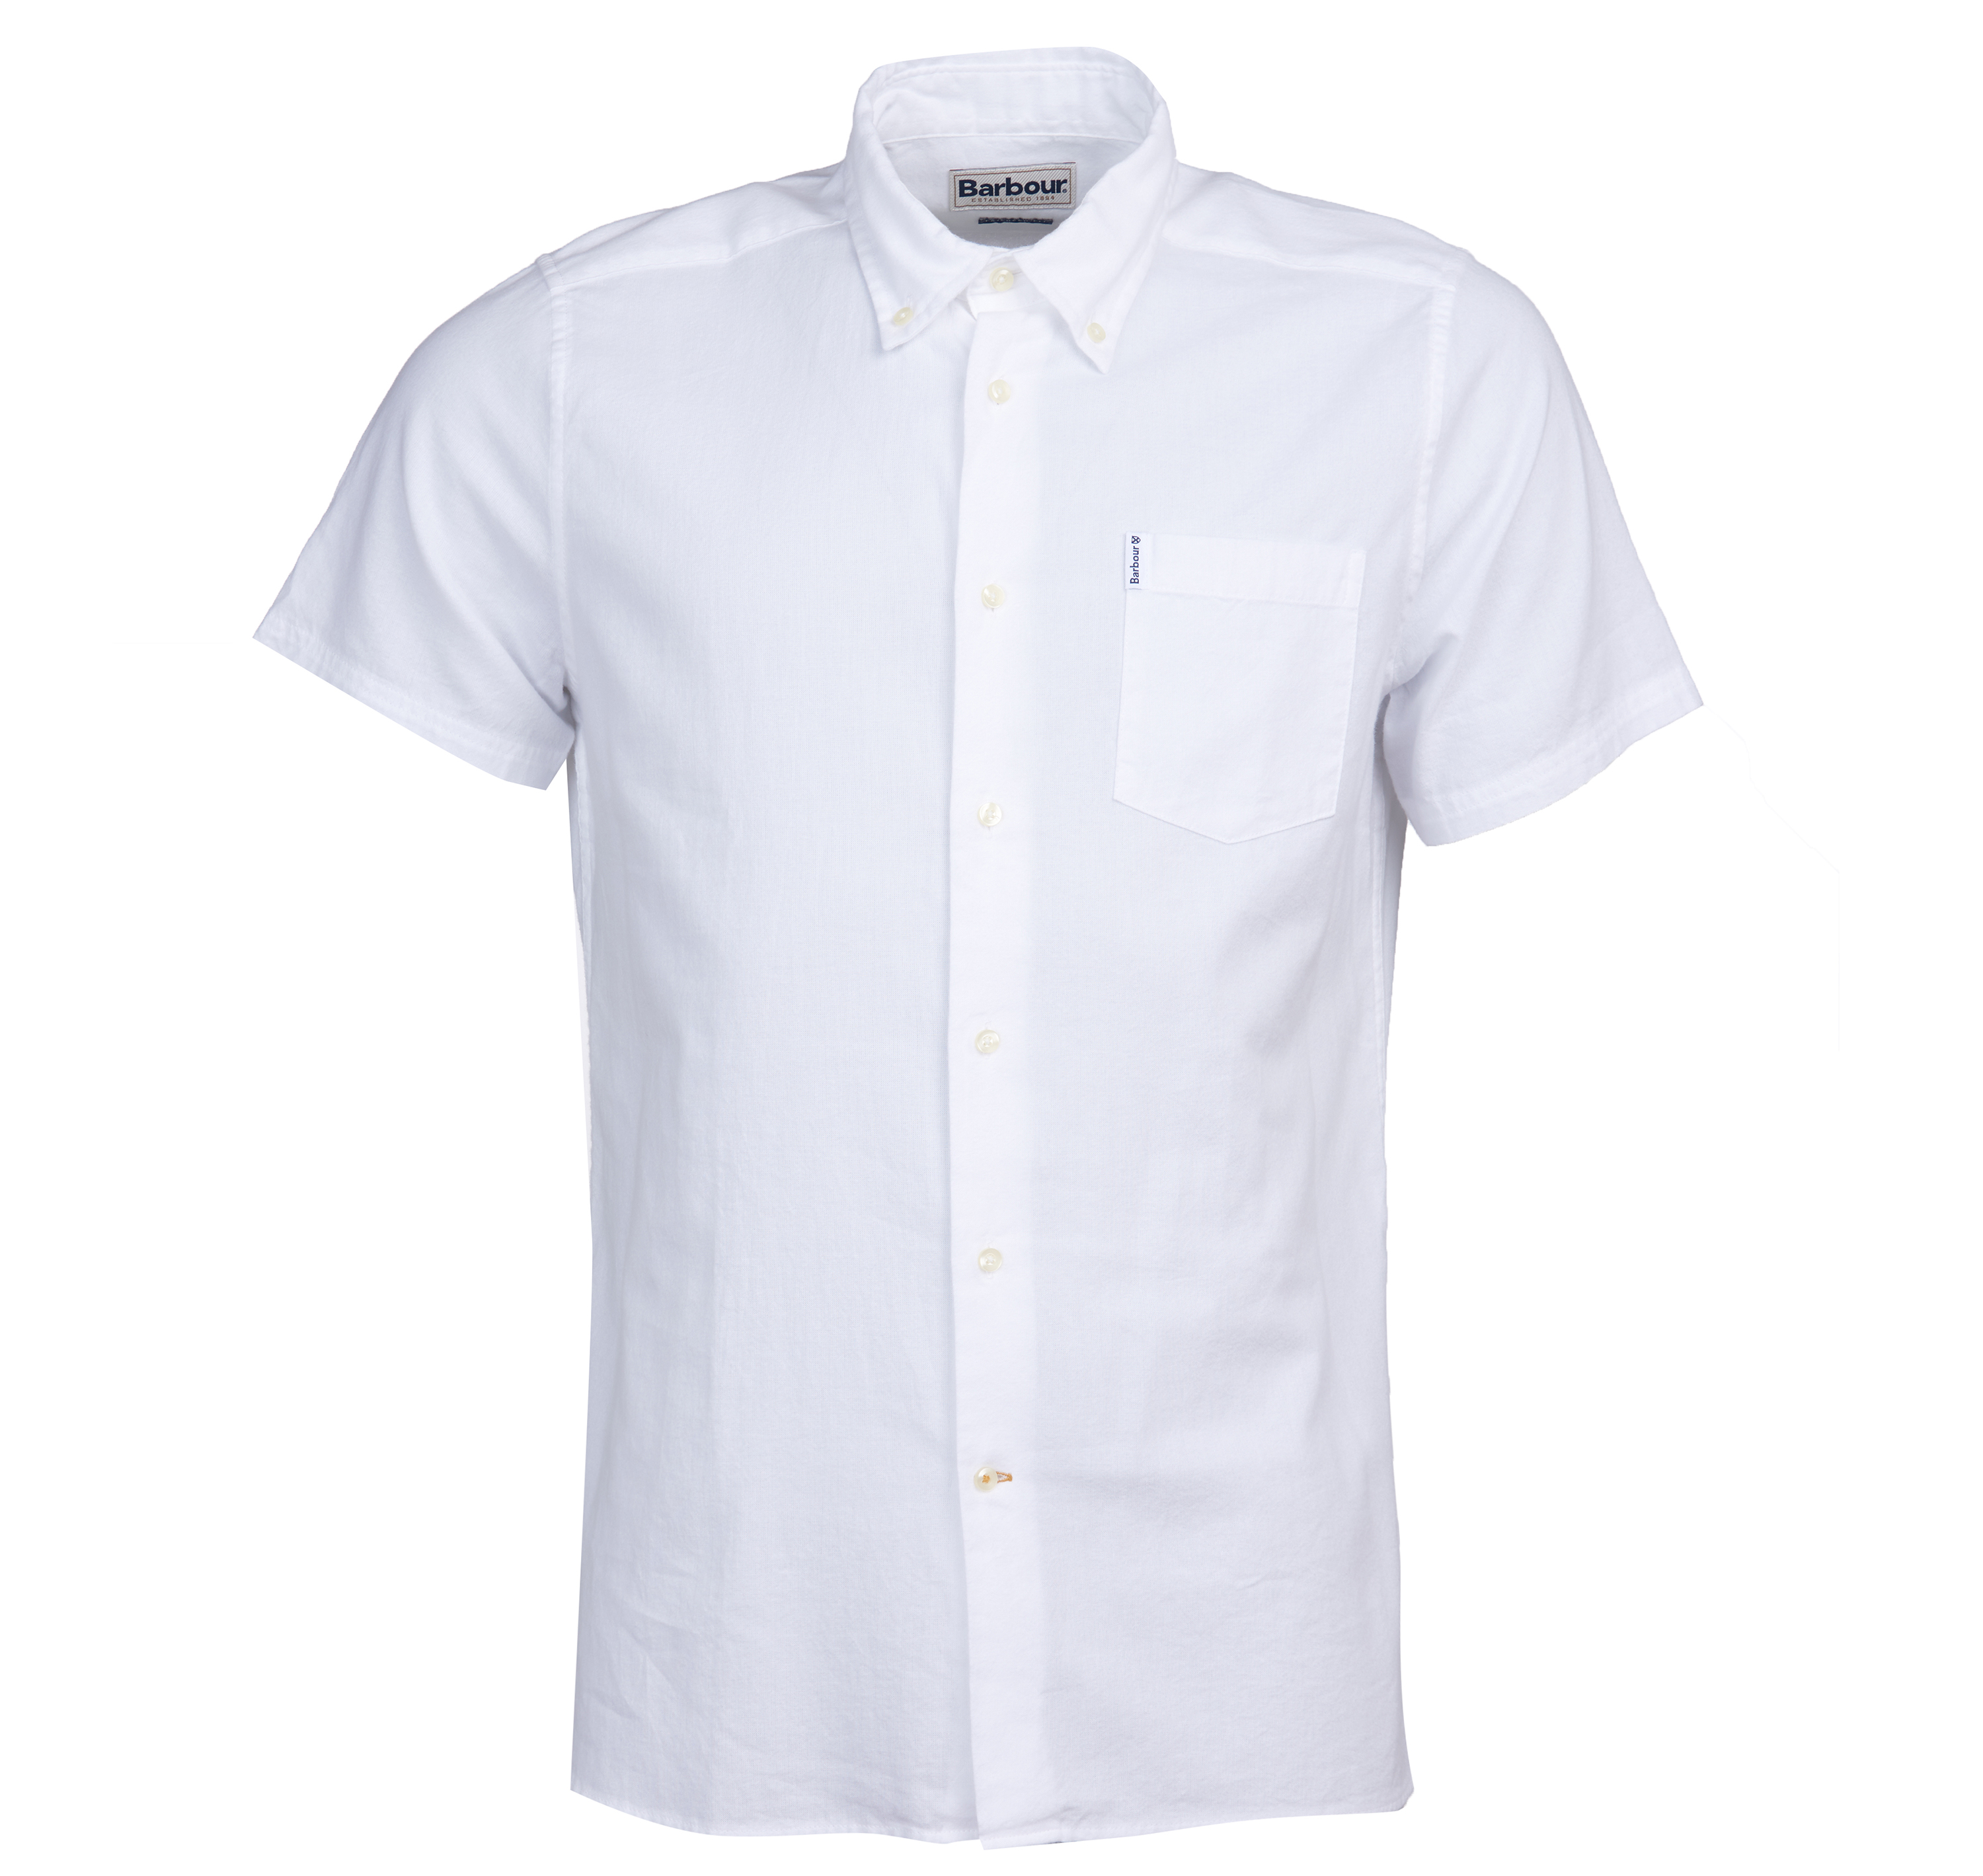 Barbour Barbour Oxford 9 Short Sleeved Shirt White Tailored Fit